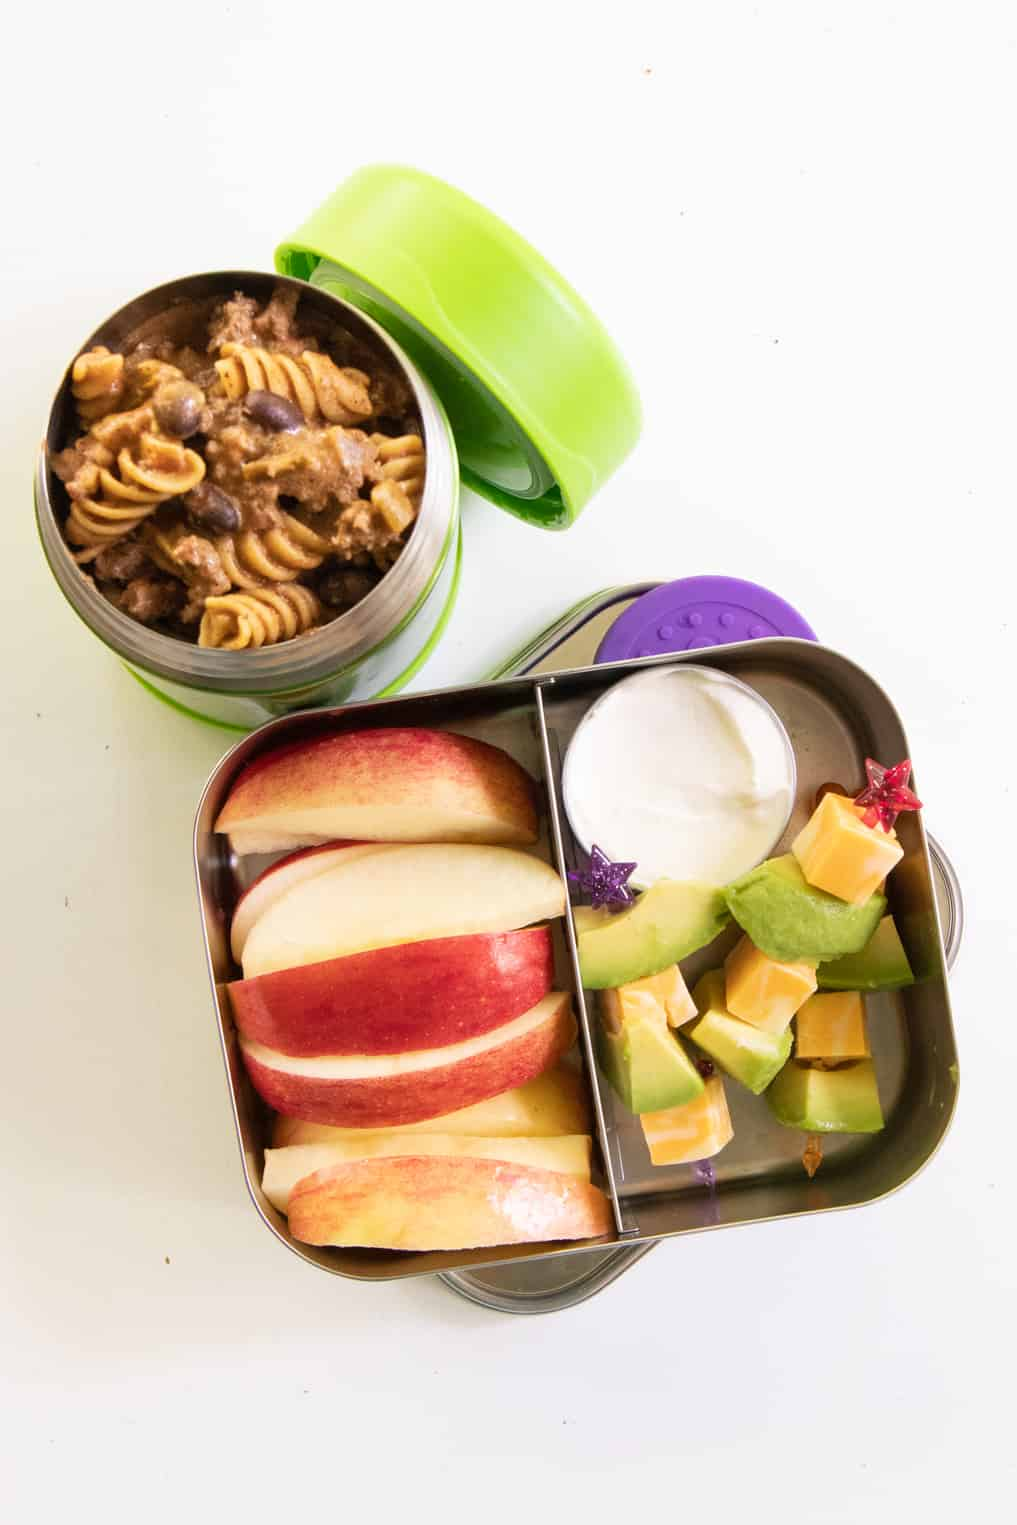 Stainless steel lunchbox with fruit and cheese and avocado skewers, next to a Thermos of taco macaroni skillet.